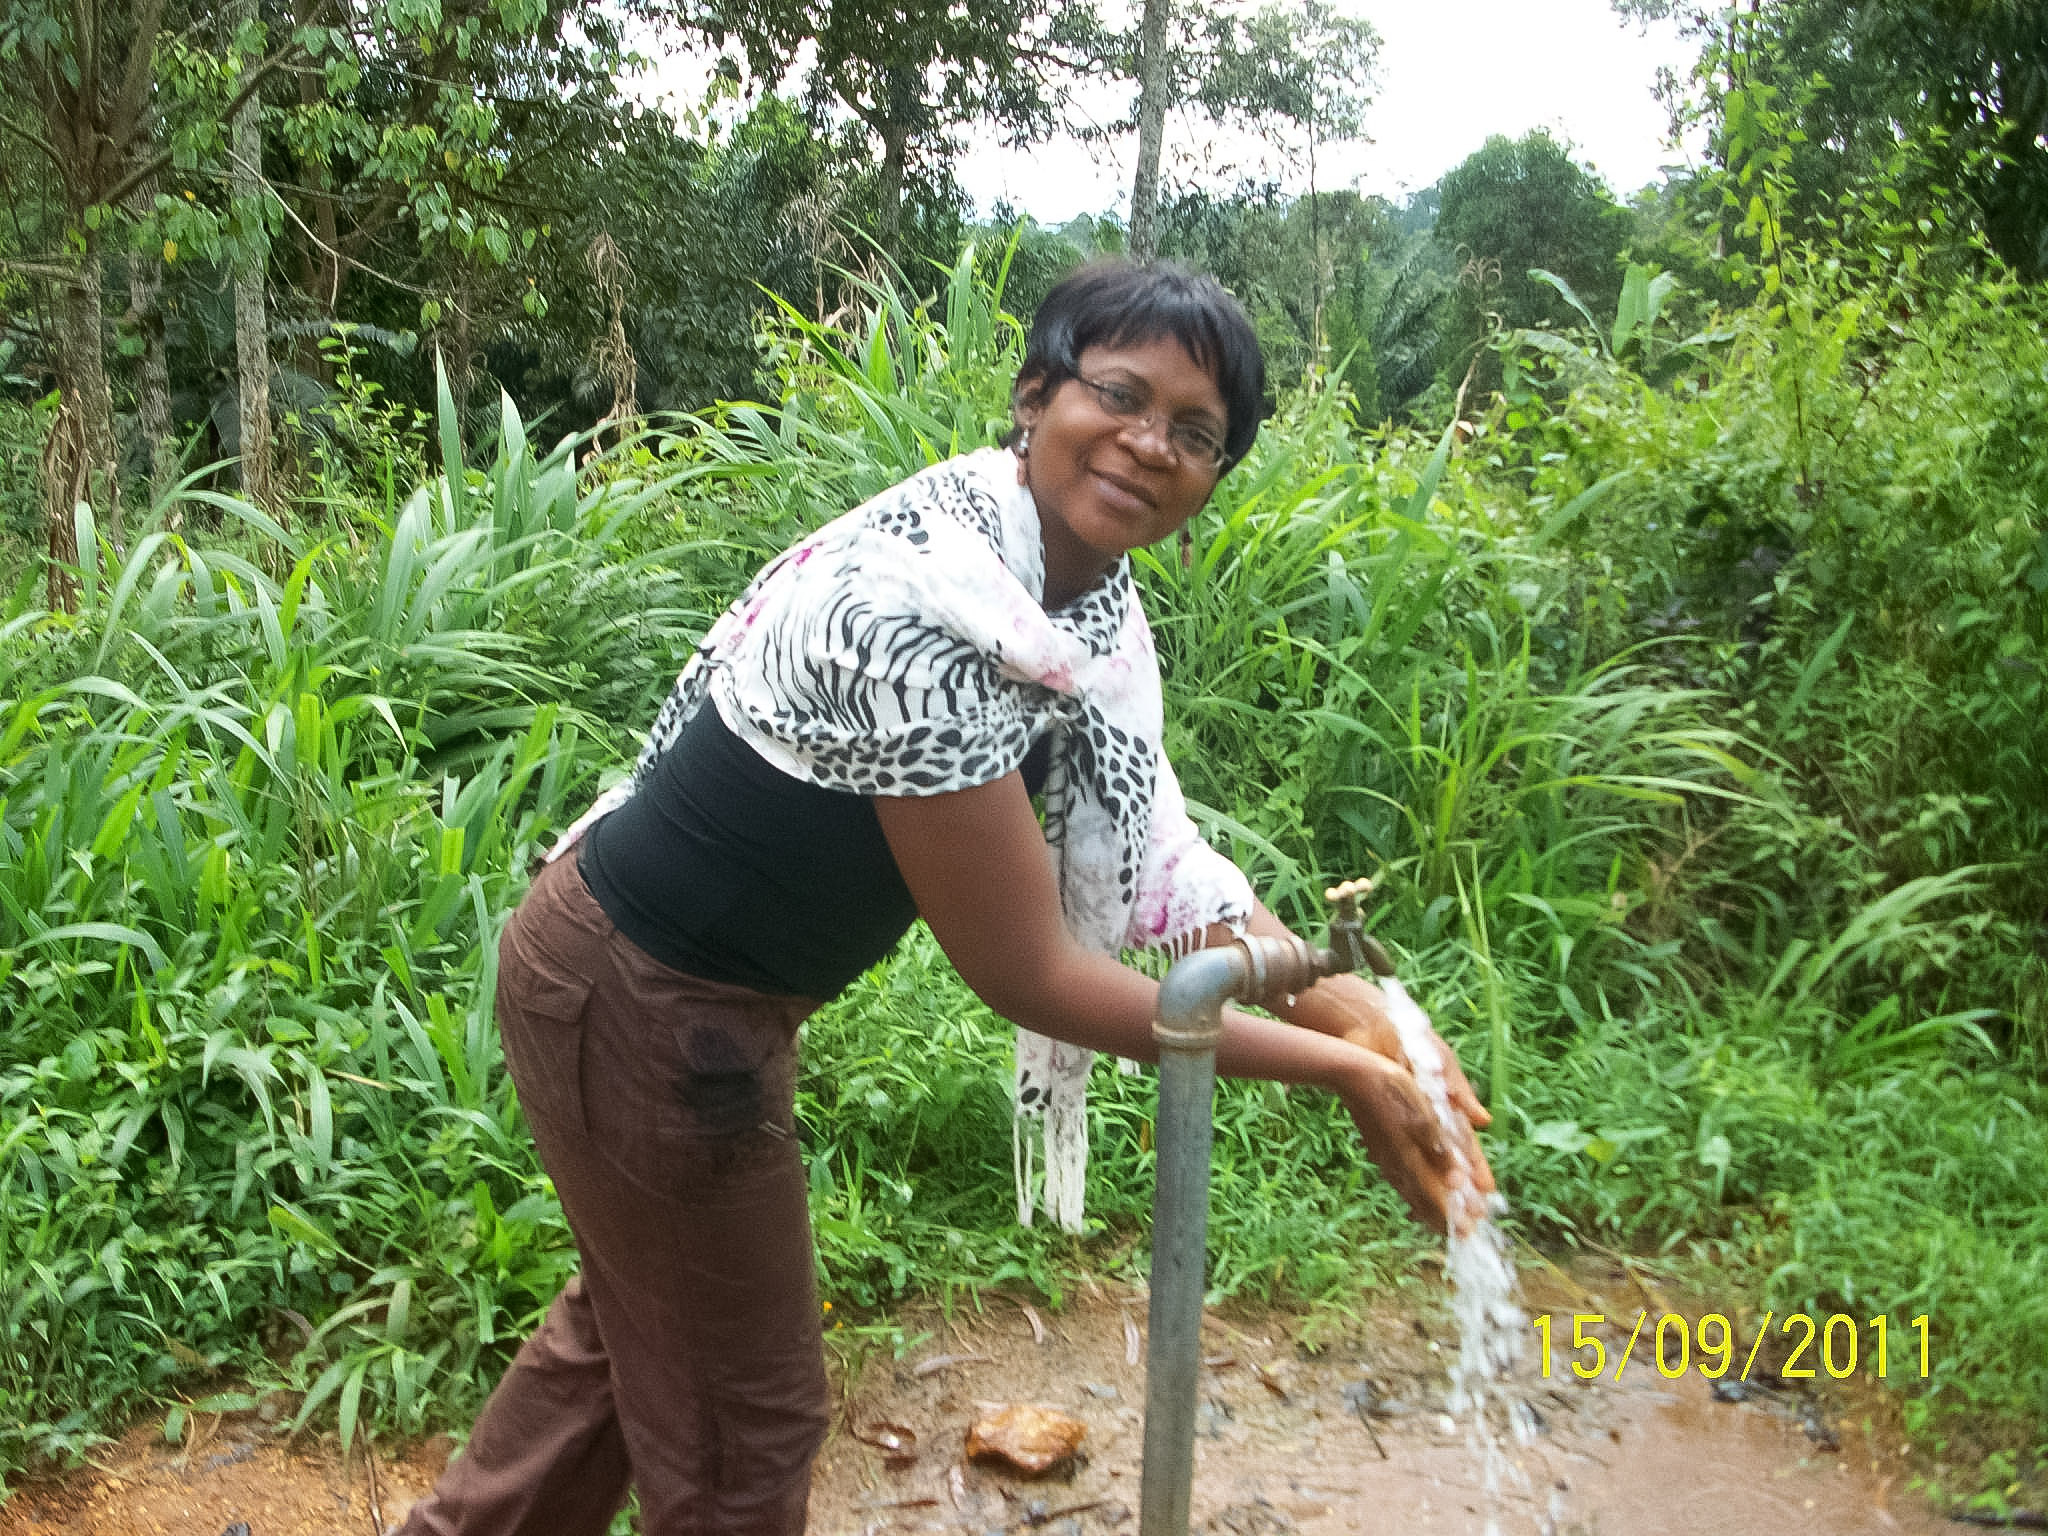 Water Catchment Project for the Koh Quarter of KedjomKeku